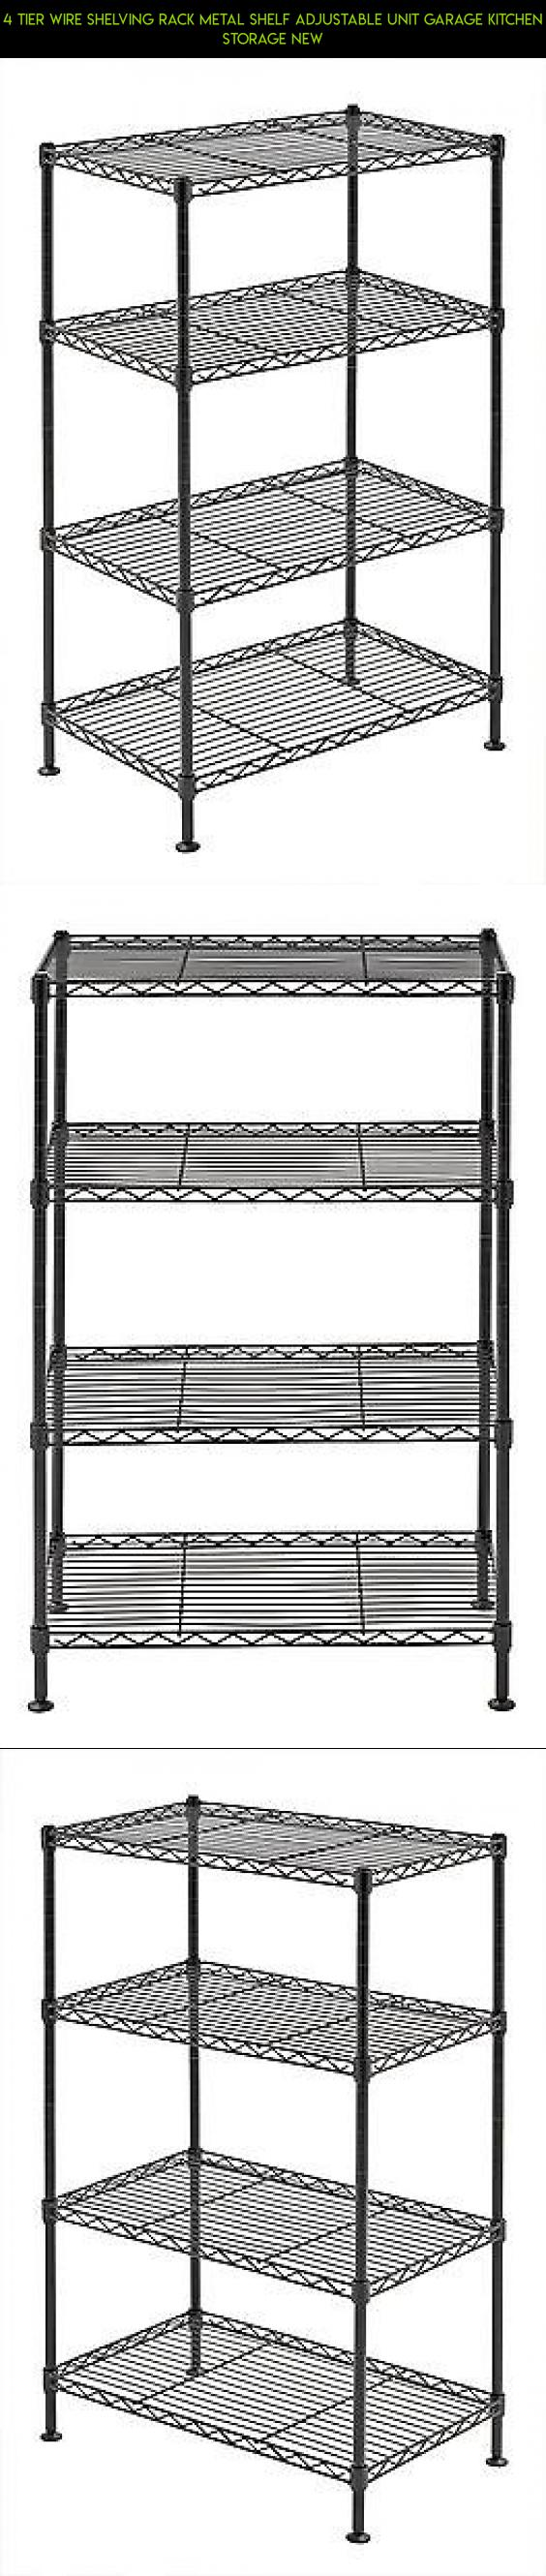 4 Tier Wire Shelving Rack Metal Shelf Adjustable Unit Garage Kitchen ...